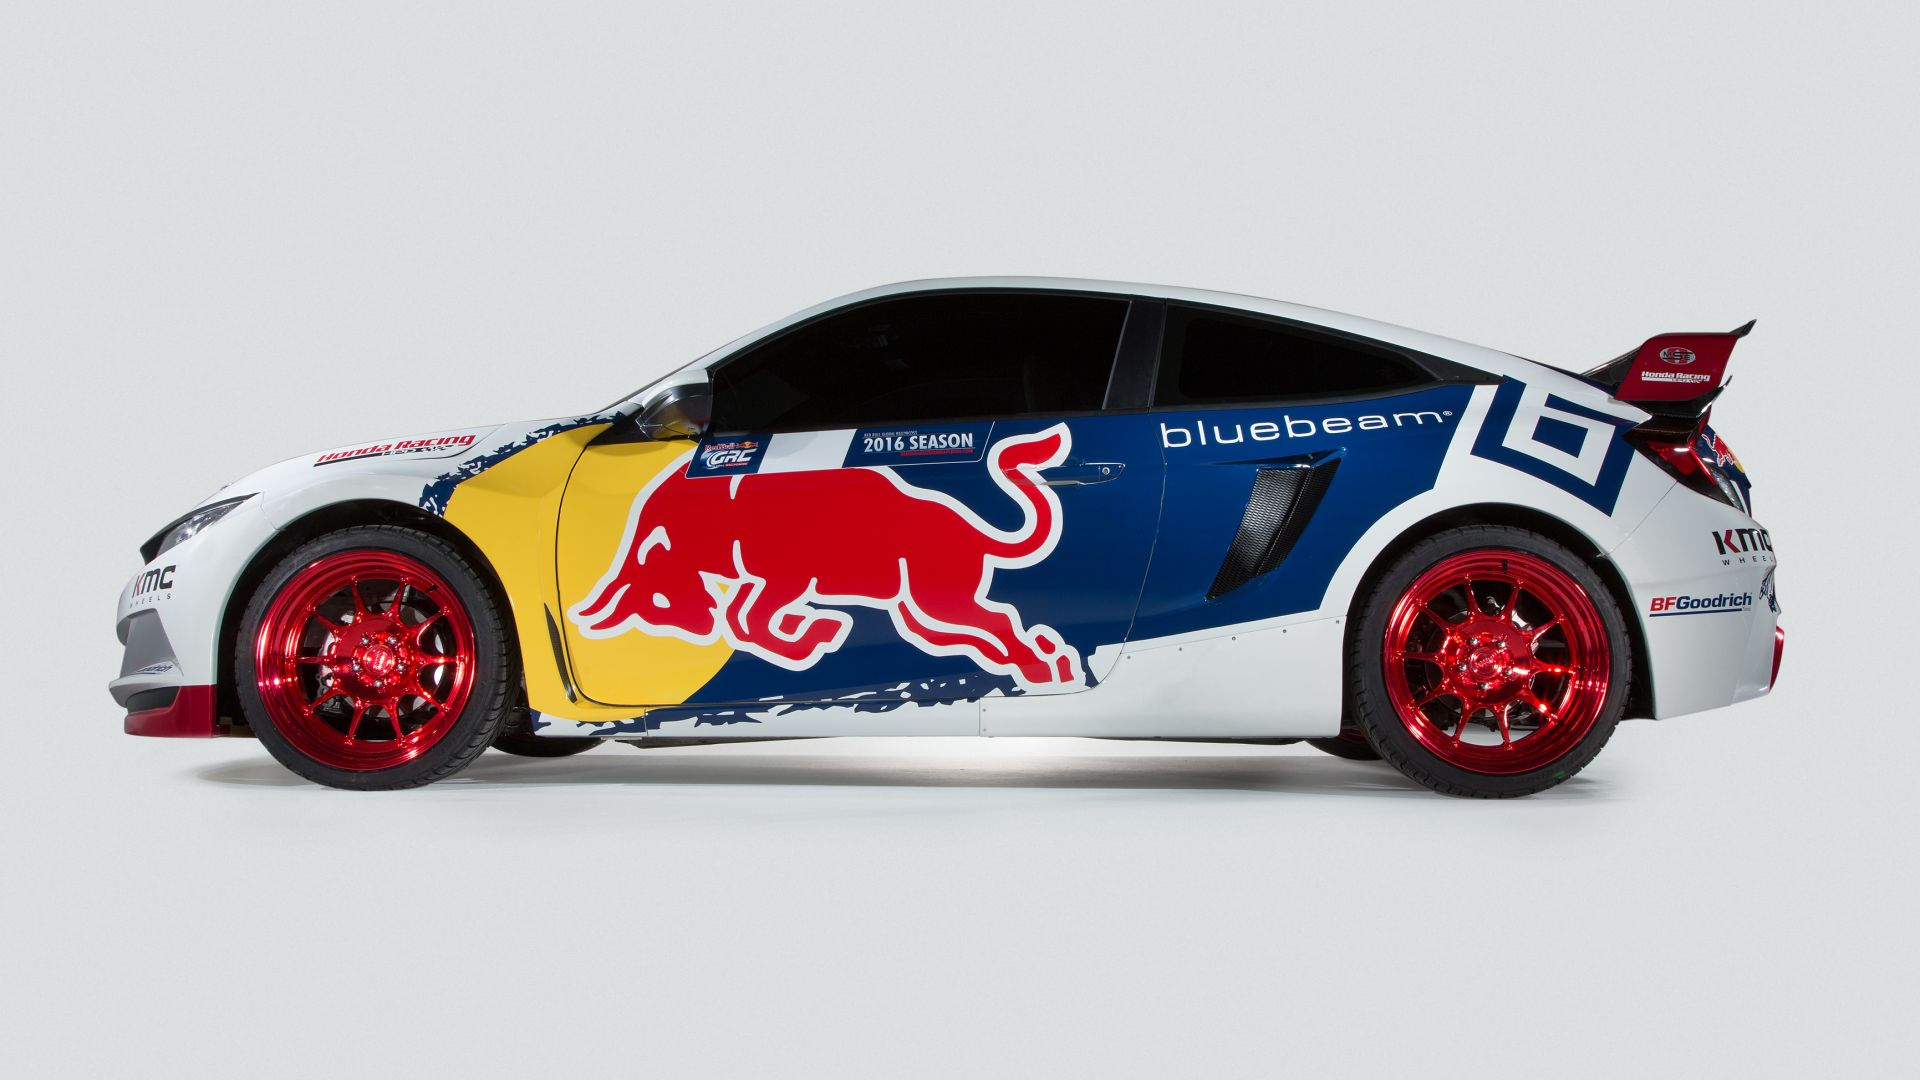 Honda Civic Coupe Rallycross, NYIAS 2016, rally, sport car, red bull (horizontal)